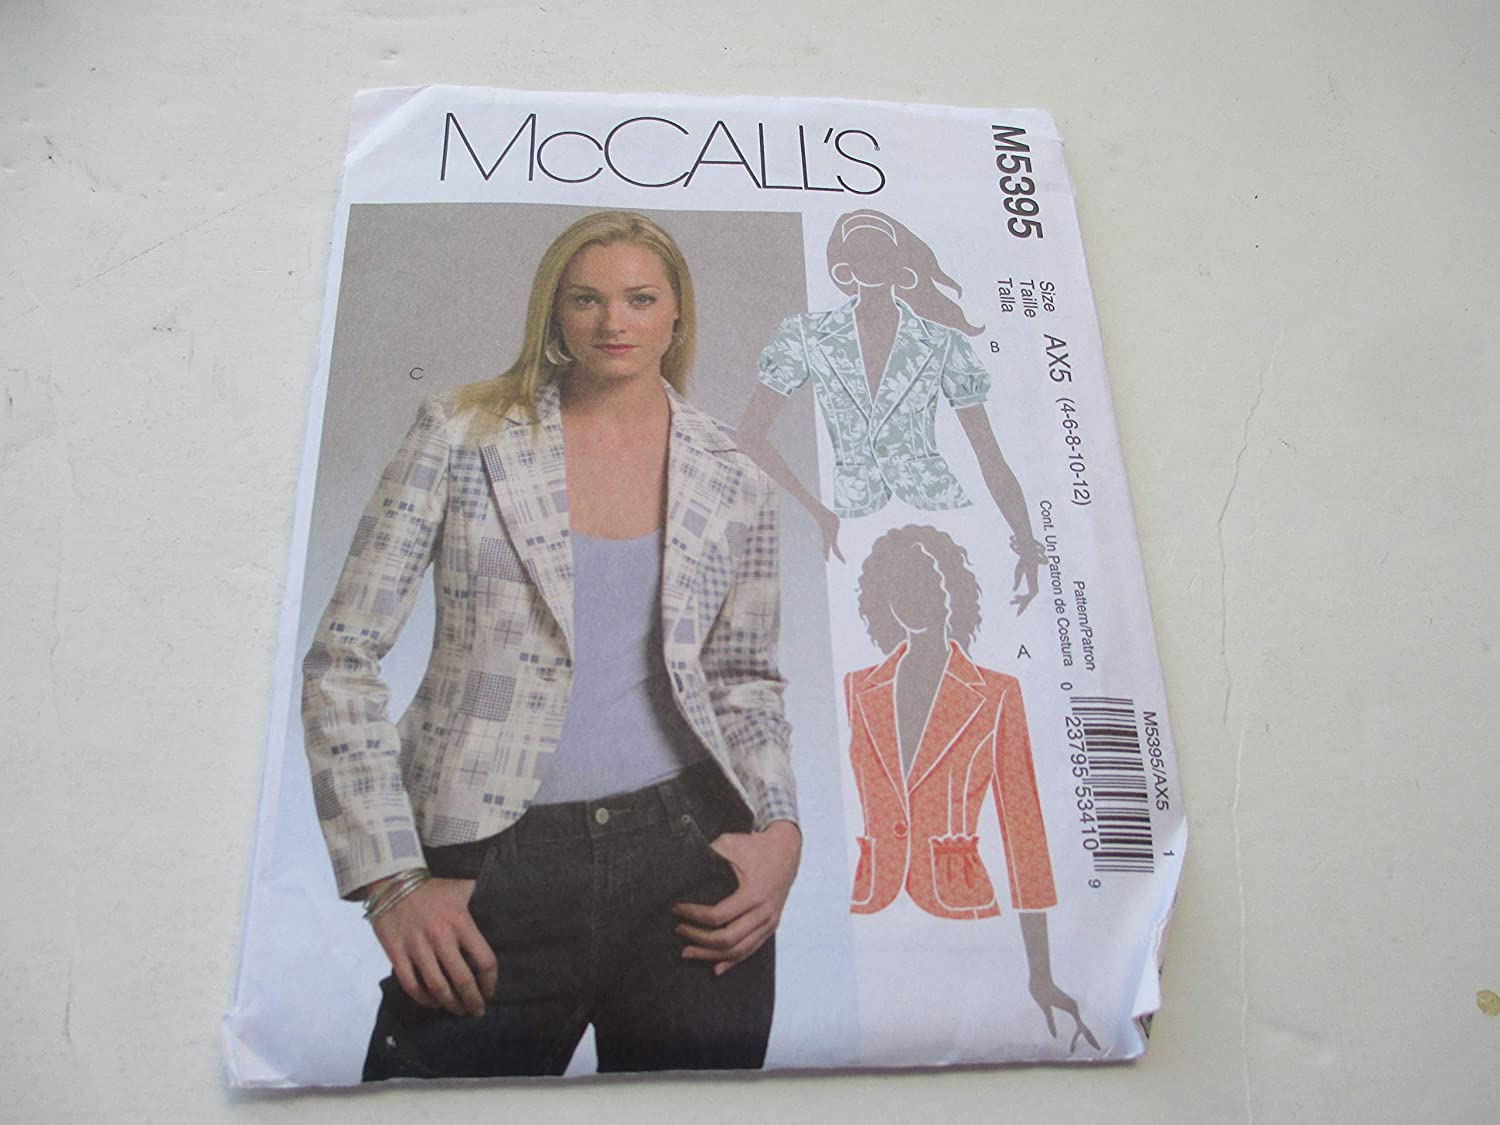 McCall's M5395 Sewing Pattern Misses Unlined Jackets Size Medium AX5 4,6,8,10,12